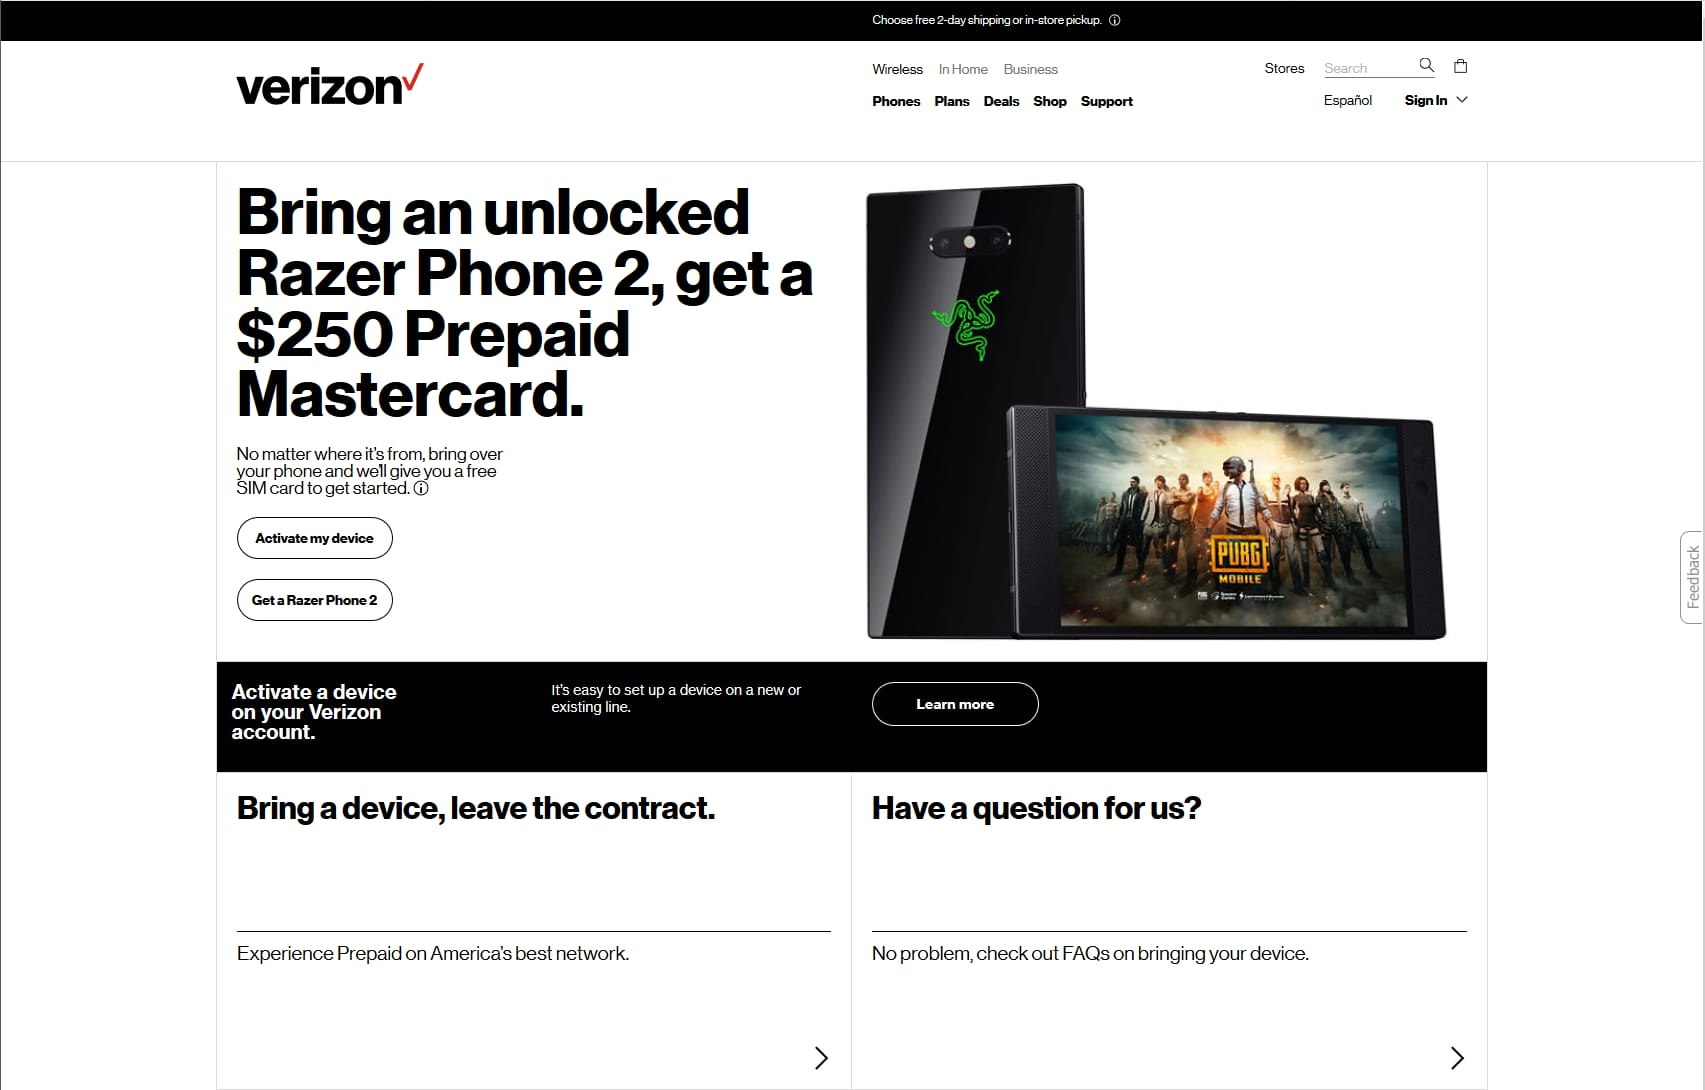 Verizon Offering $250 Pre-paid Card When Activating New Line With Razer Phone 2